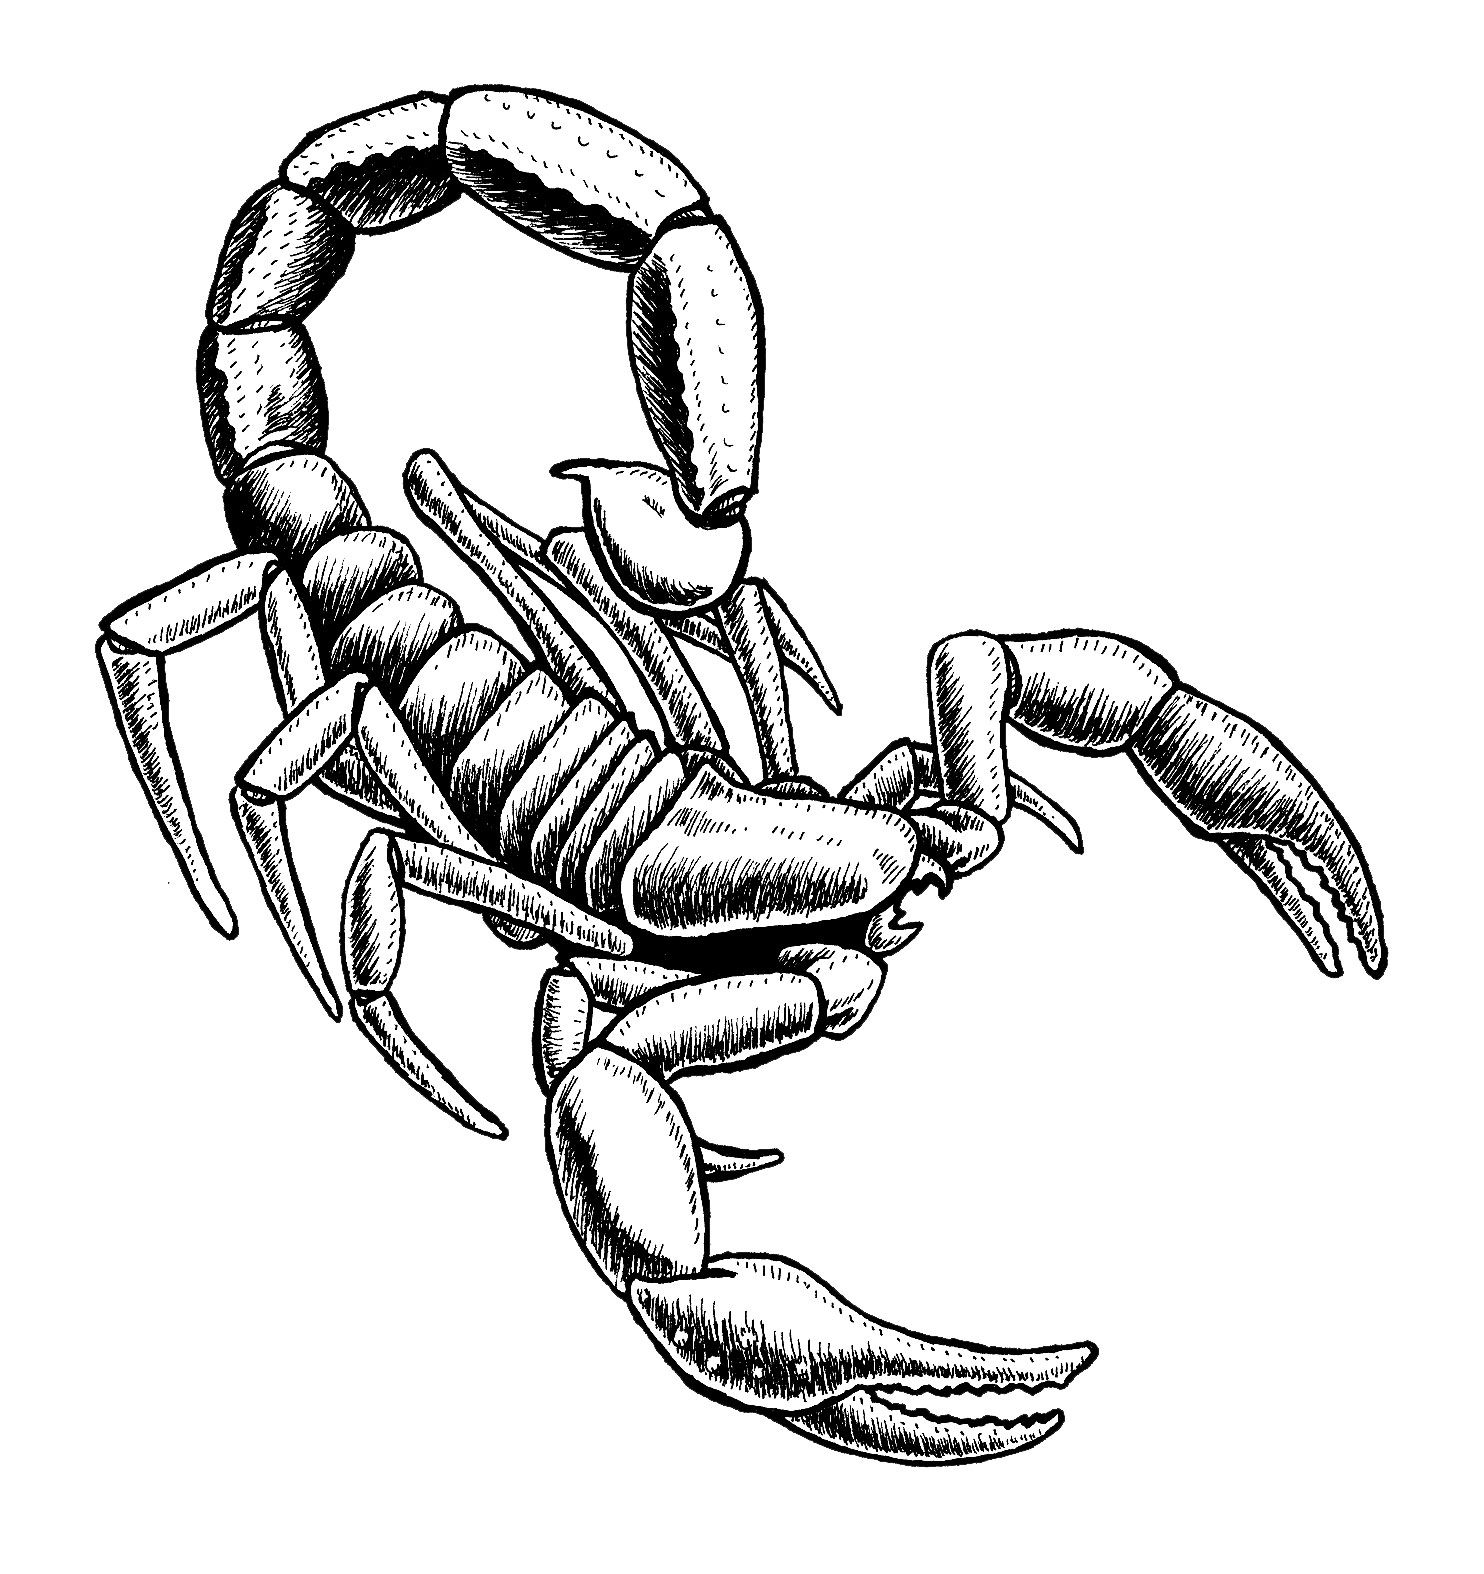 Scorpion clipart easy. How to draw wikiclipart